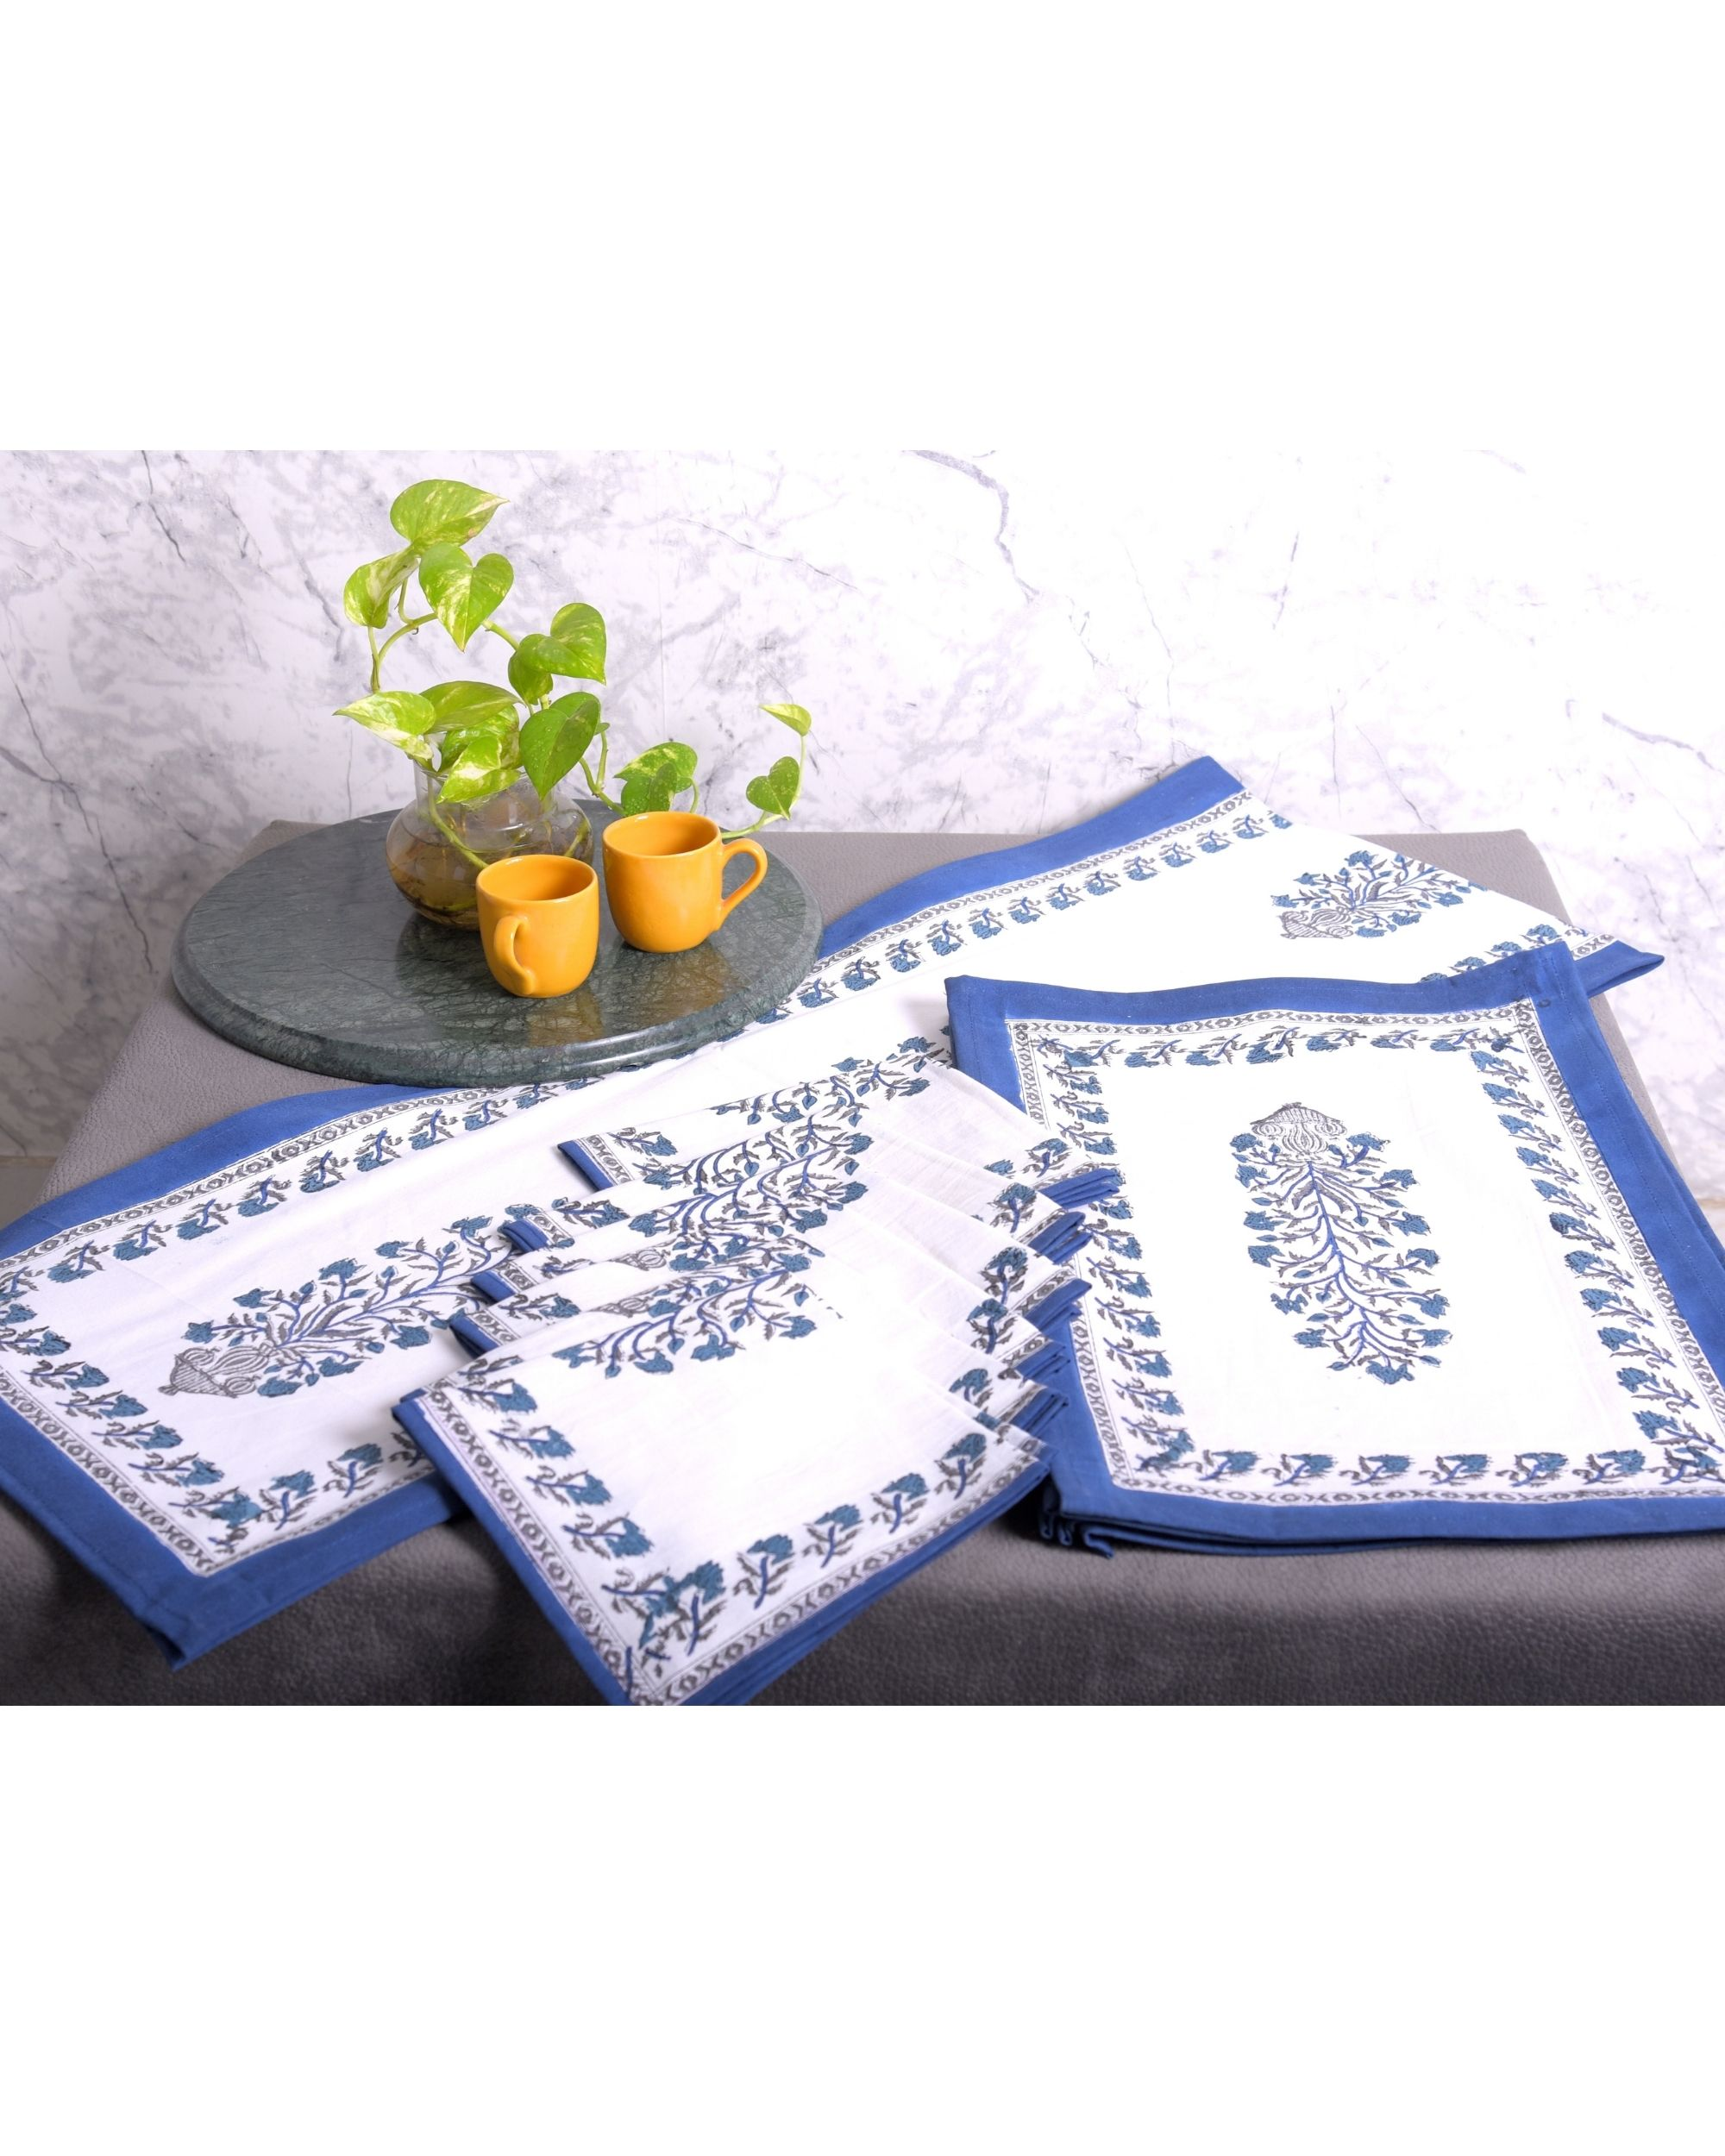 White and blue floral printed table runner, table mats and napkins - set of 13